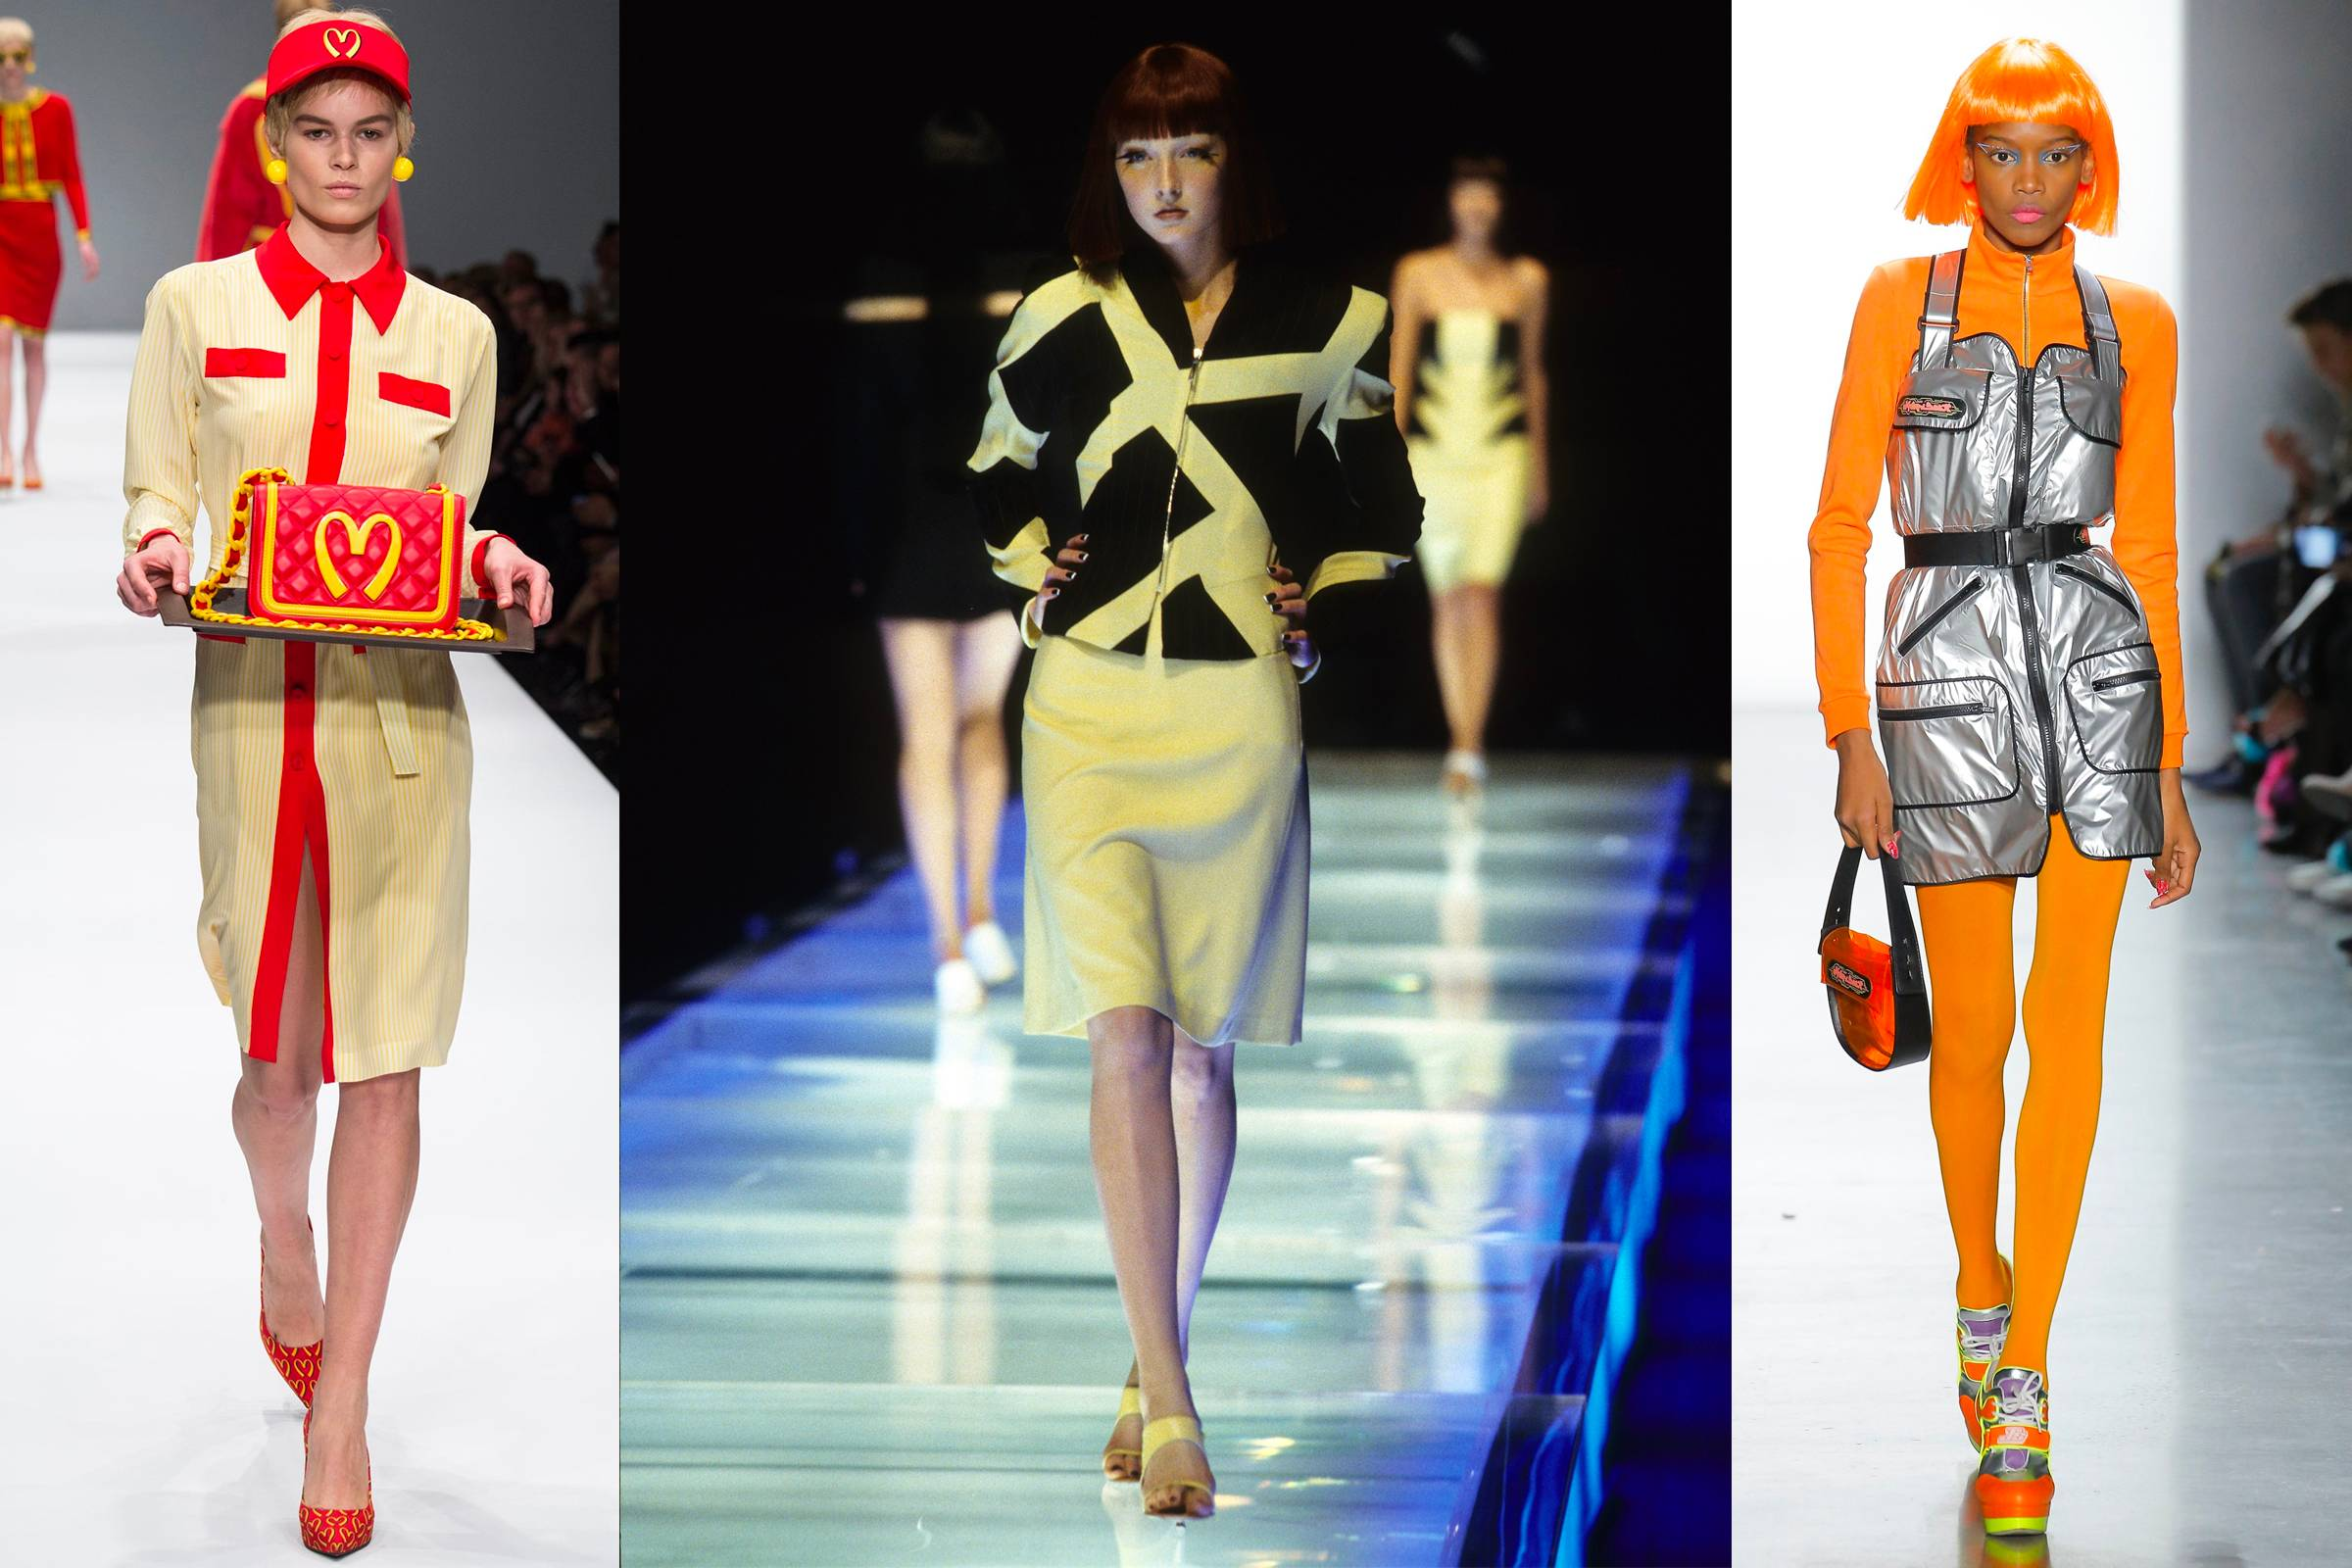 (from left to right) Moschino Fall/Winter 2014, Alexander McQueen Spring/Summer 1998, Jeremy Scott Fall/Winter 2018